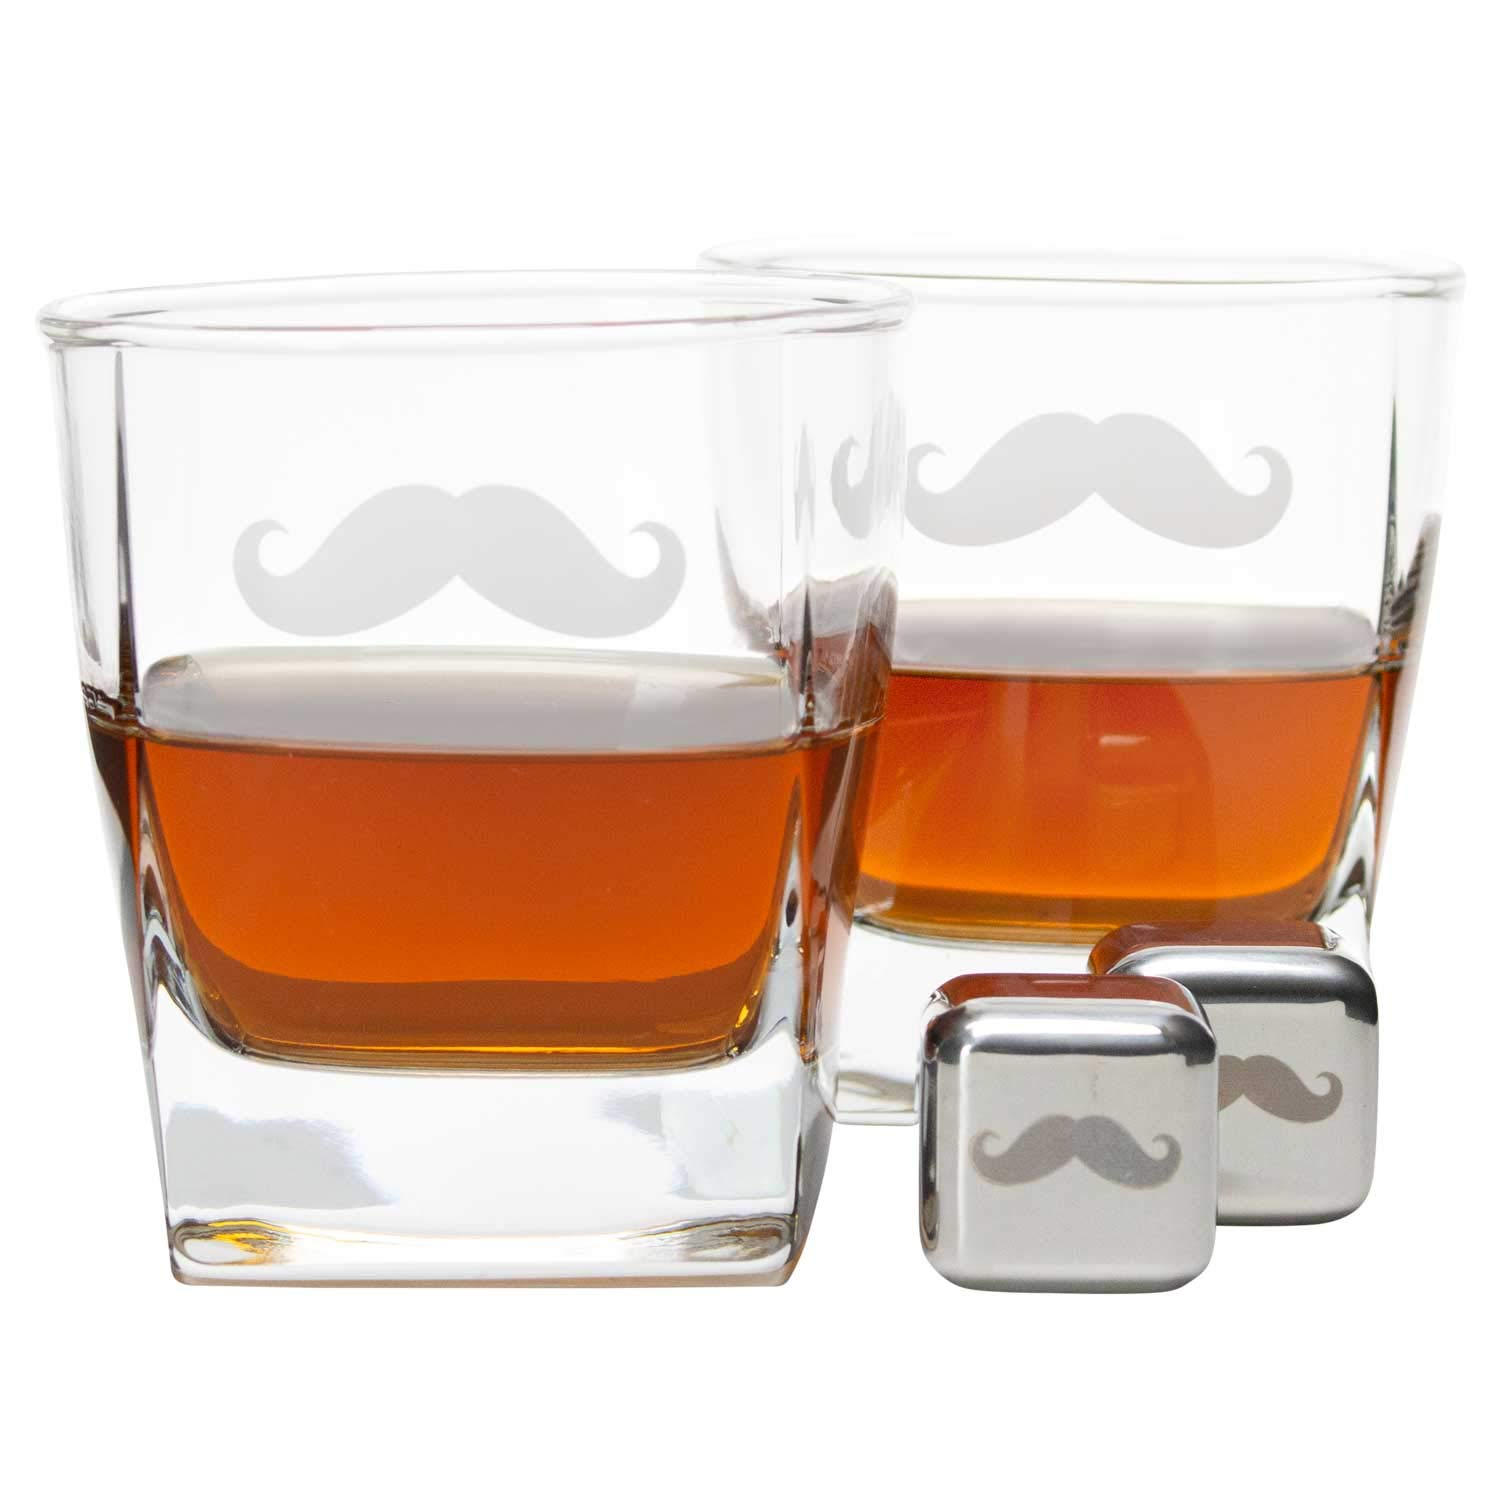 Comes in Wooden Box with Inner Lid Design Atterstone Whiskey Box Set with 2 Glasses and Chilling Stones with Matching Mustache Etchings Ideal for Holiday and Wedding Gifts